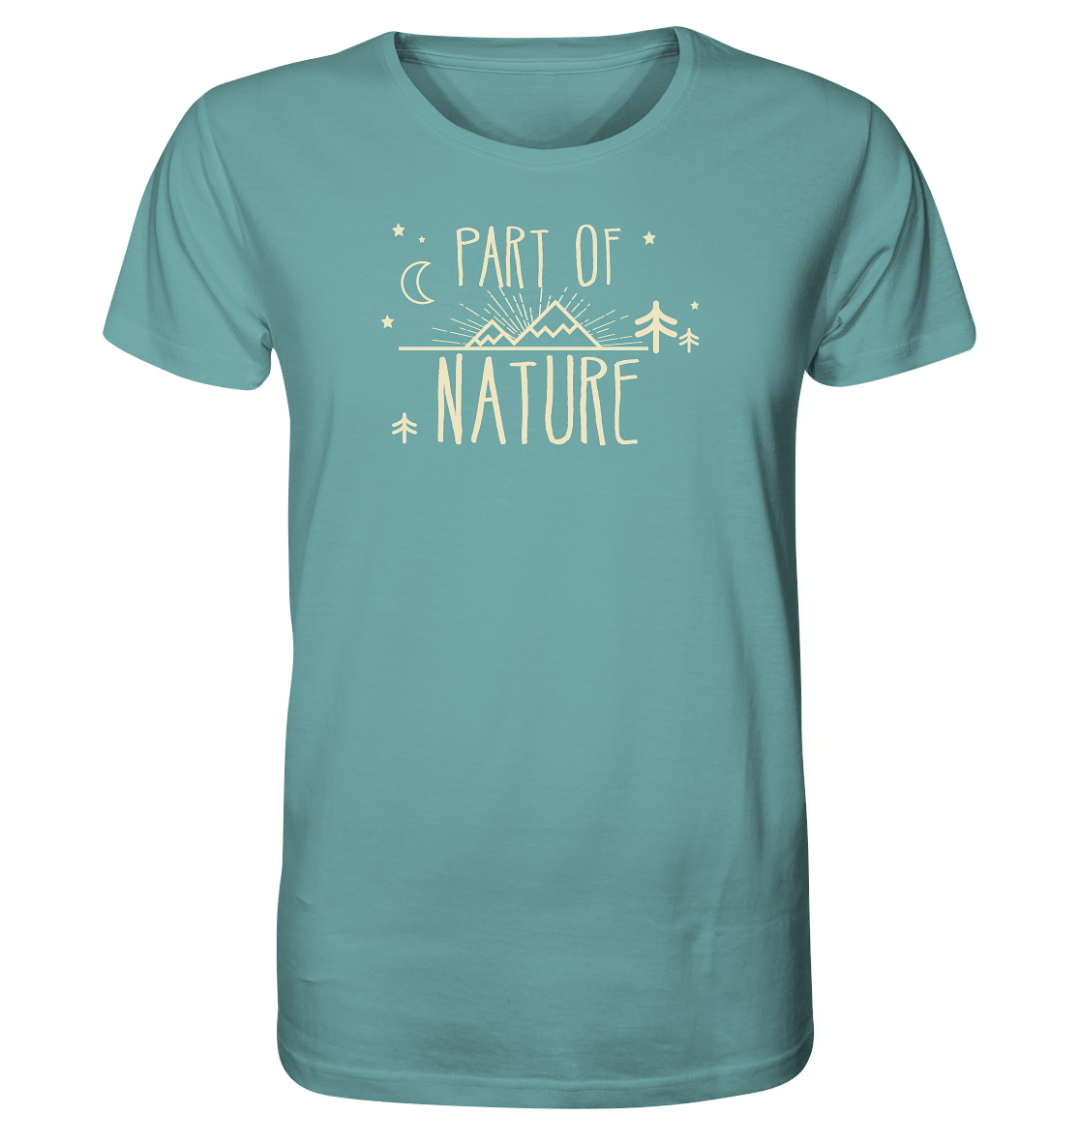 Part of Nature - Herren Shirt - Bio Cotton